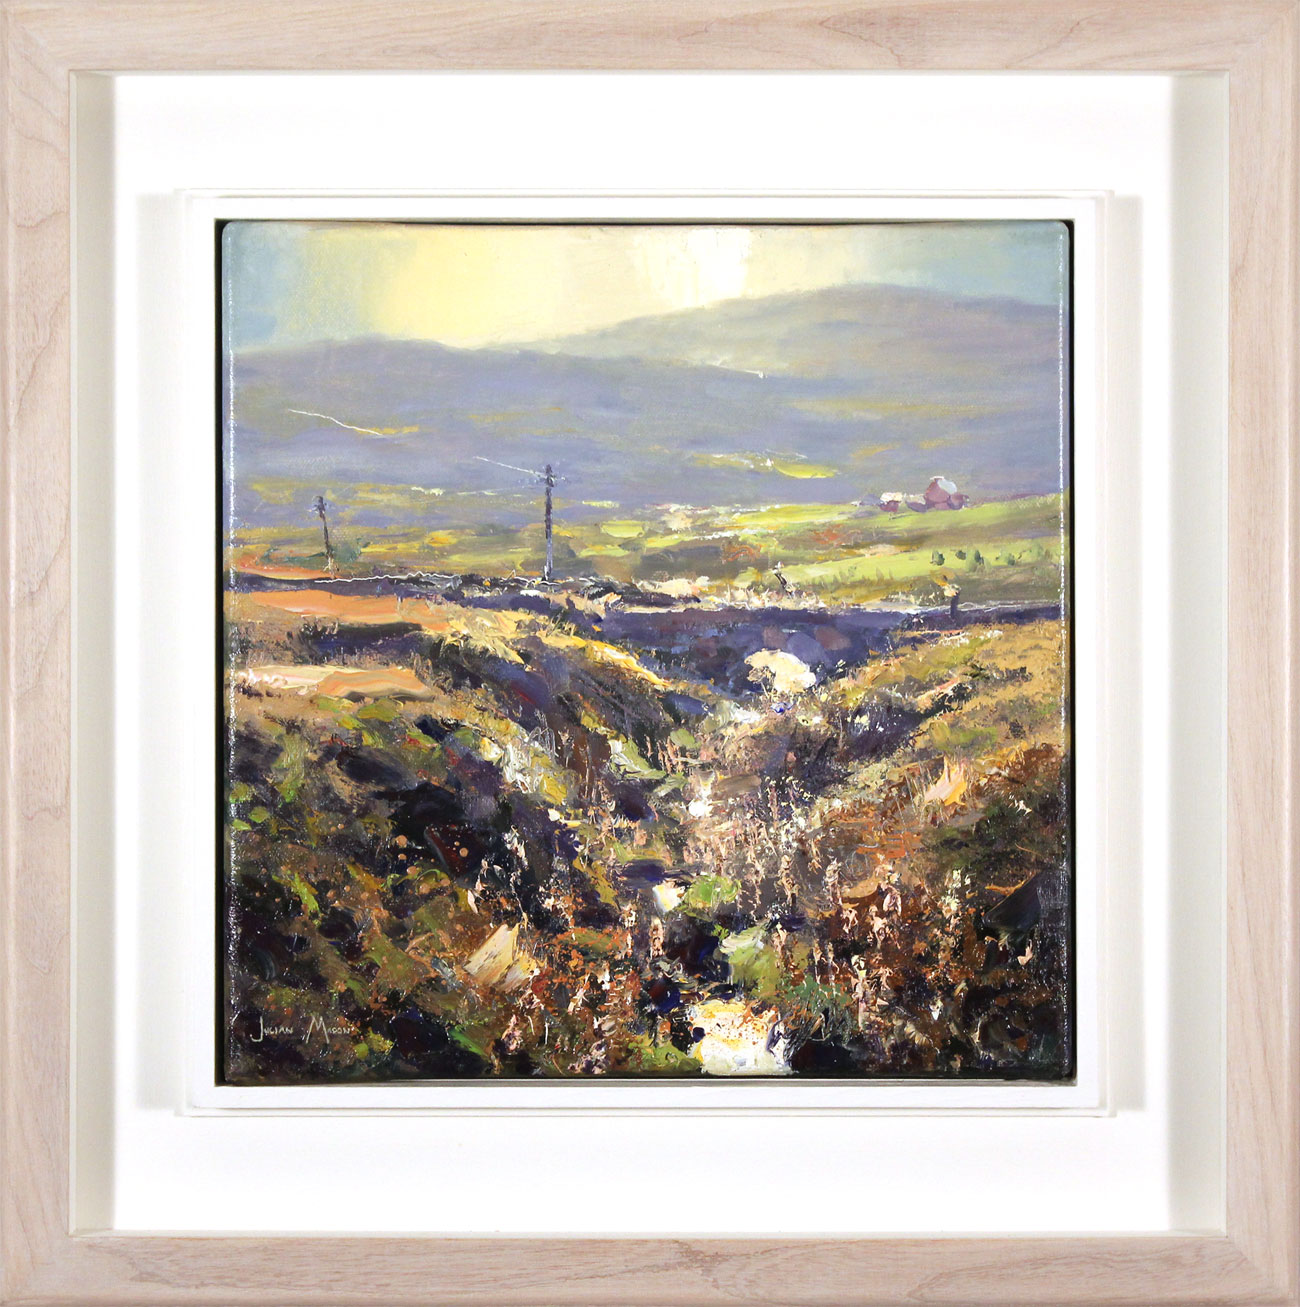 Julian Mason, Original oil painting on canvas, Goldstitch Moss. Click to enlarge